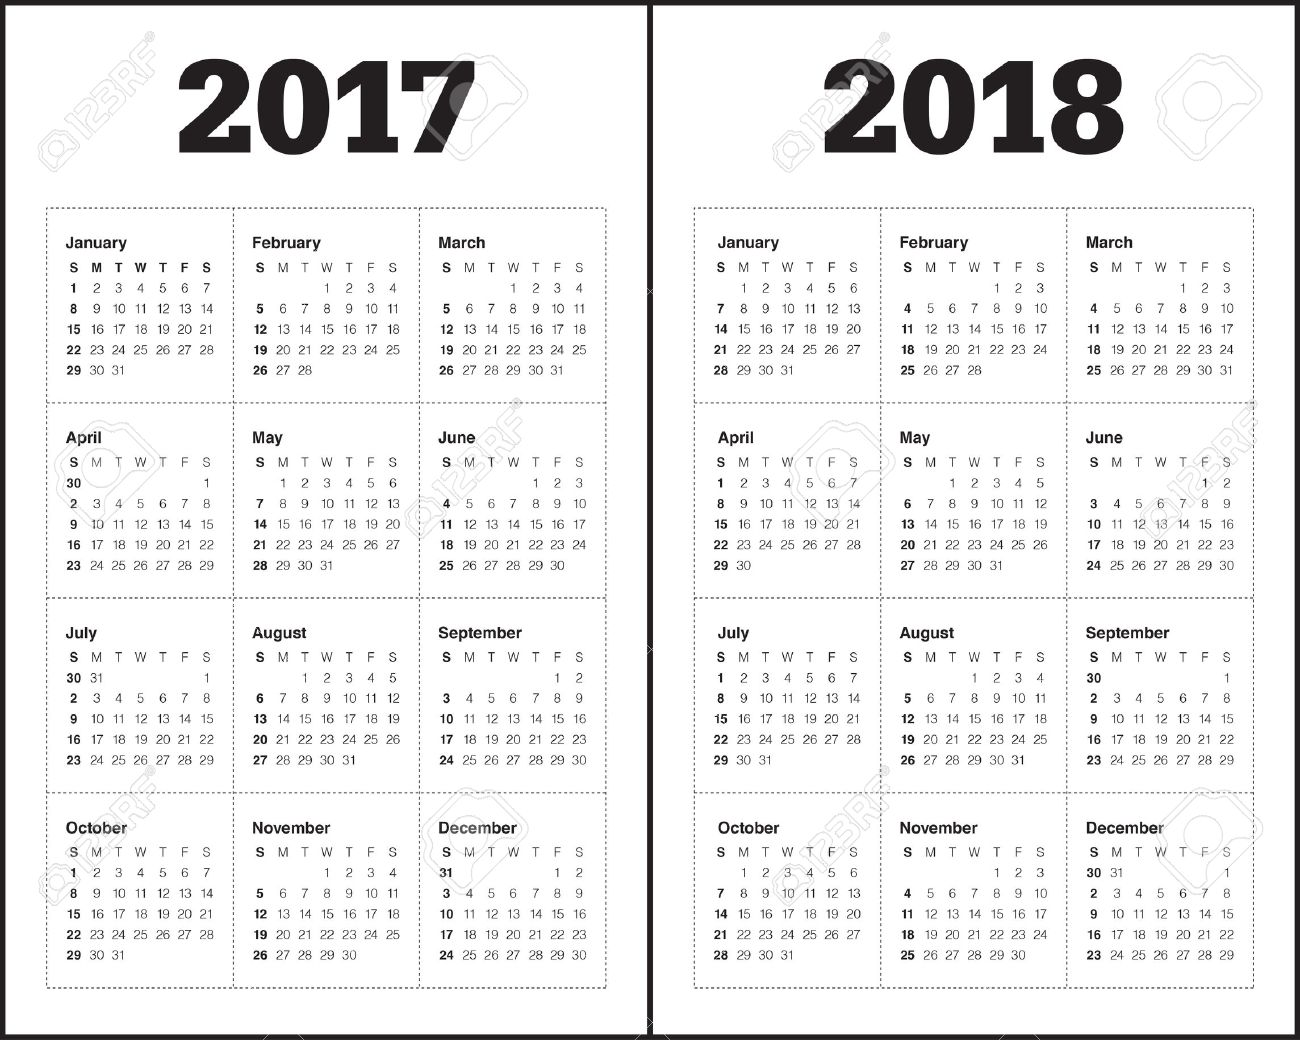 Plantilla Calendario Simple Para El Año 2017 Y El Año 2018 ...